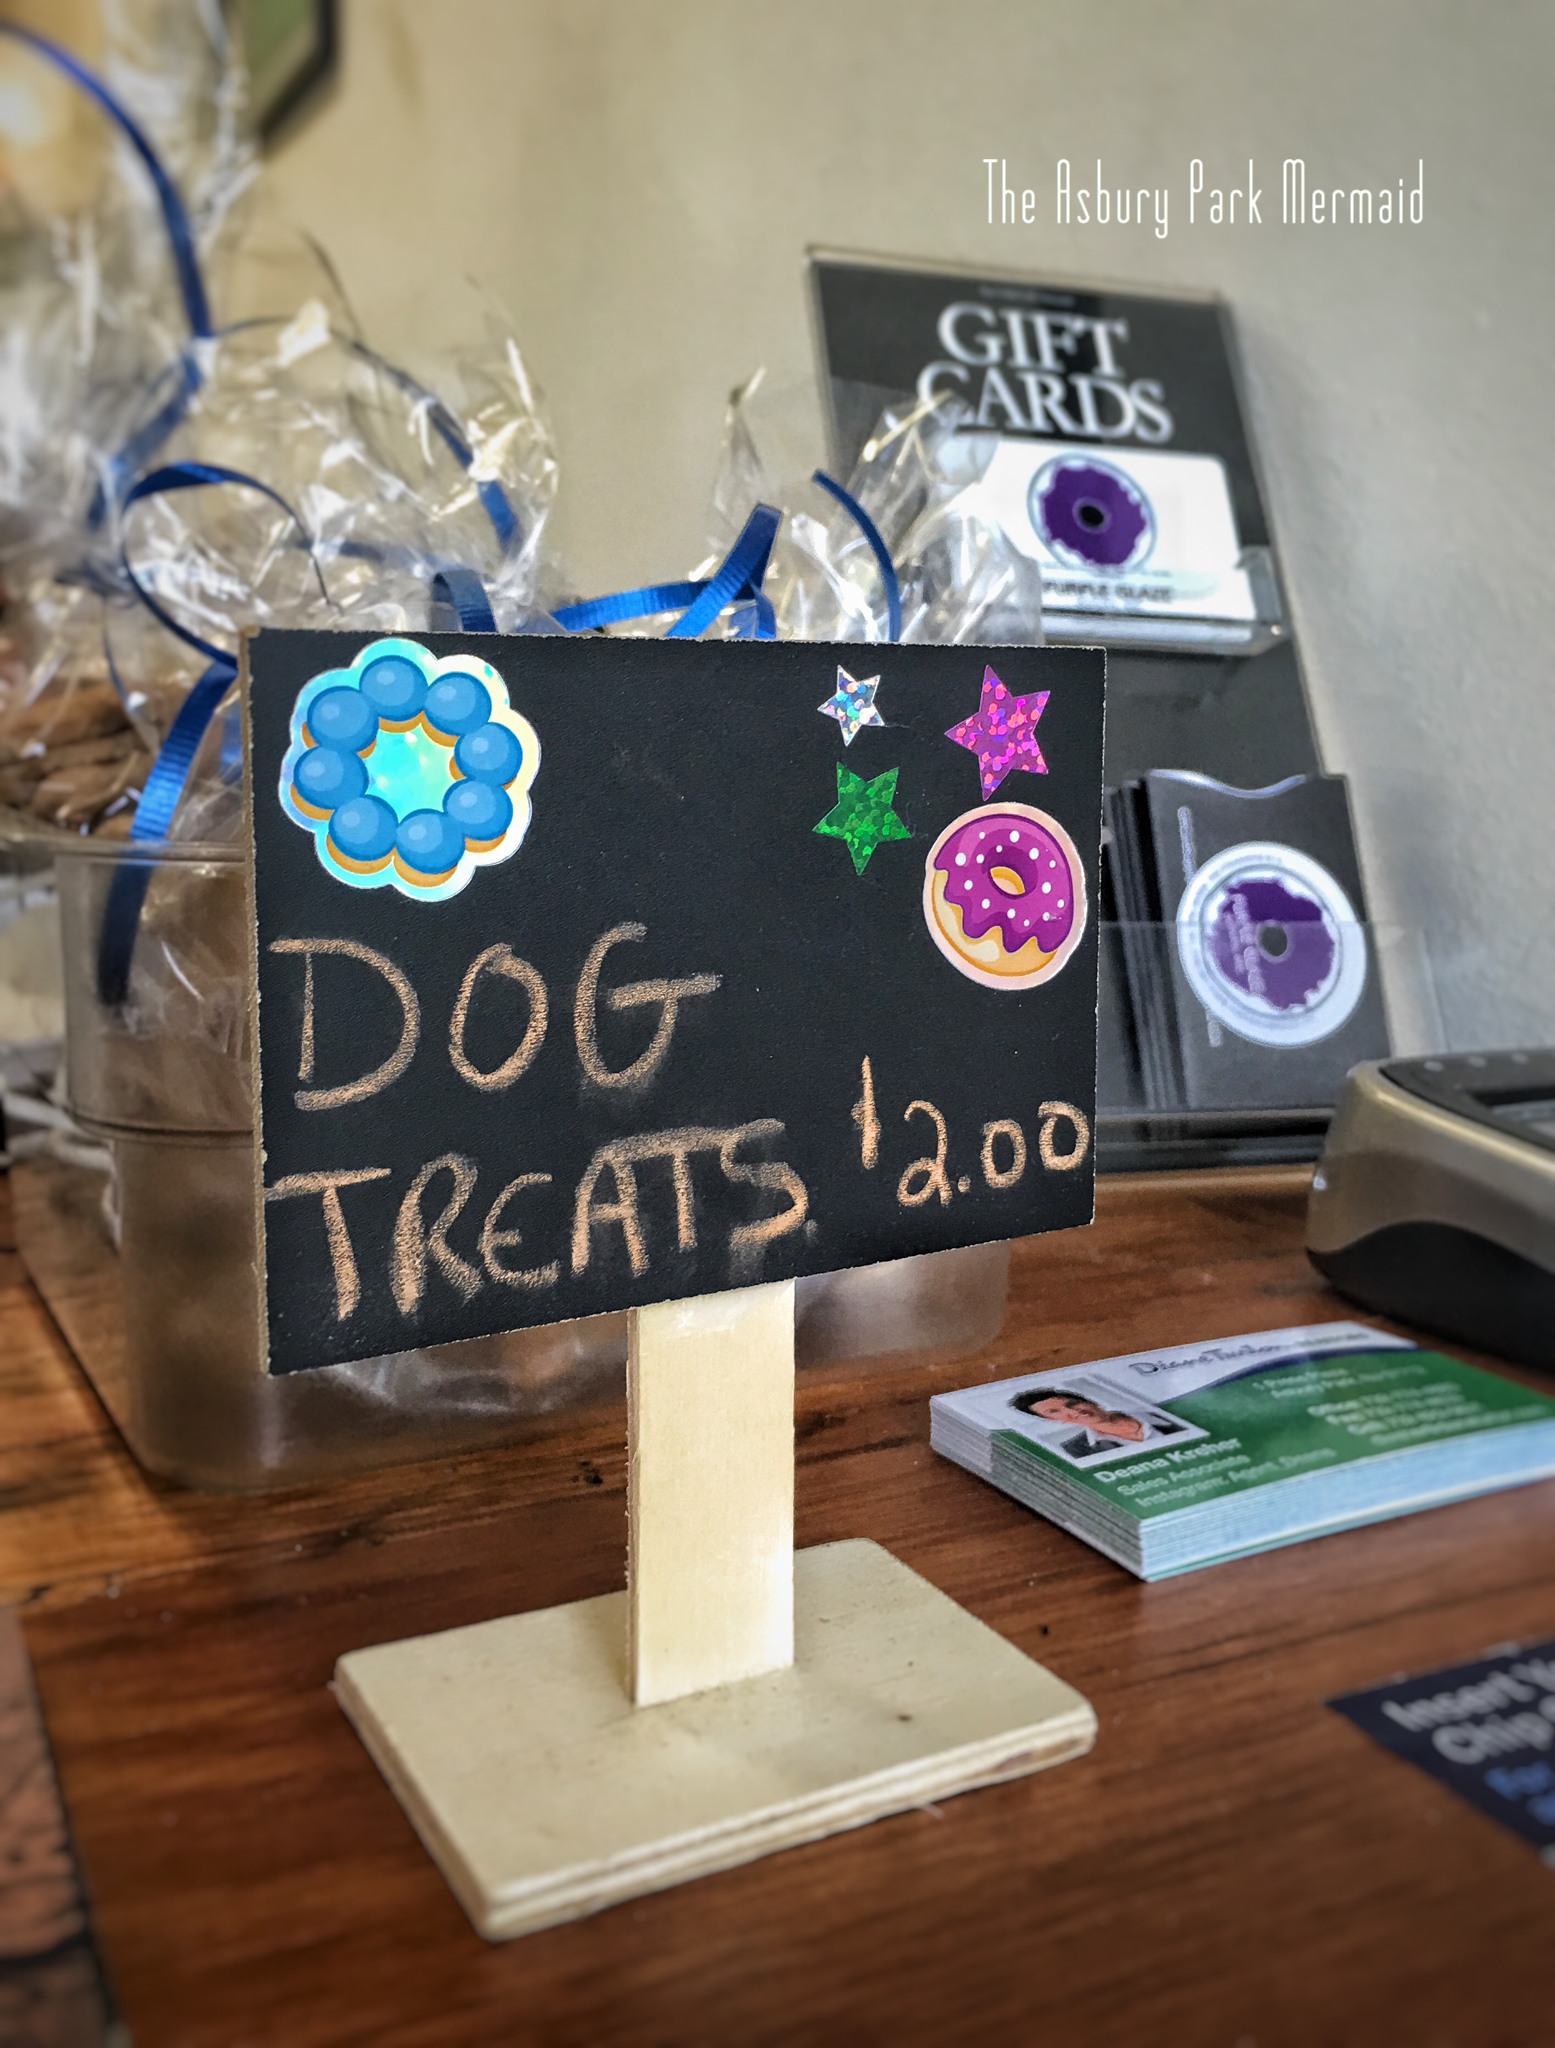 treats for your pup, too.